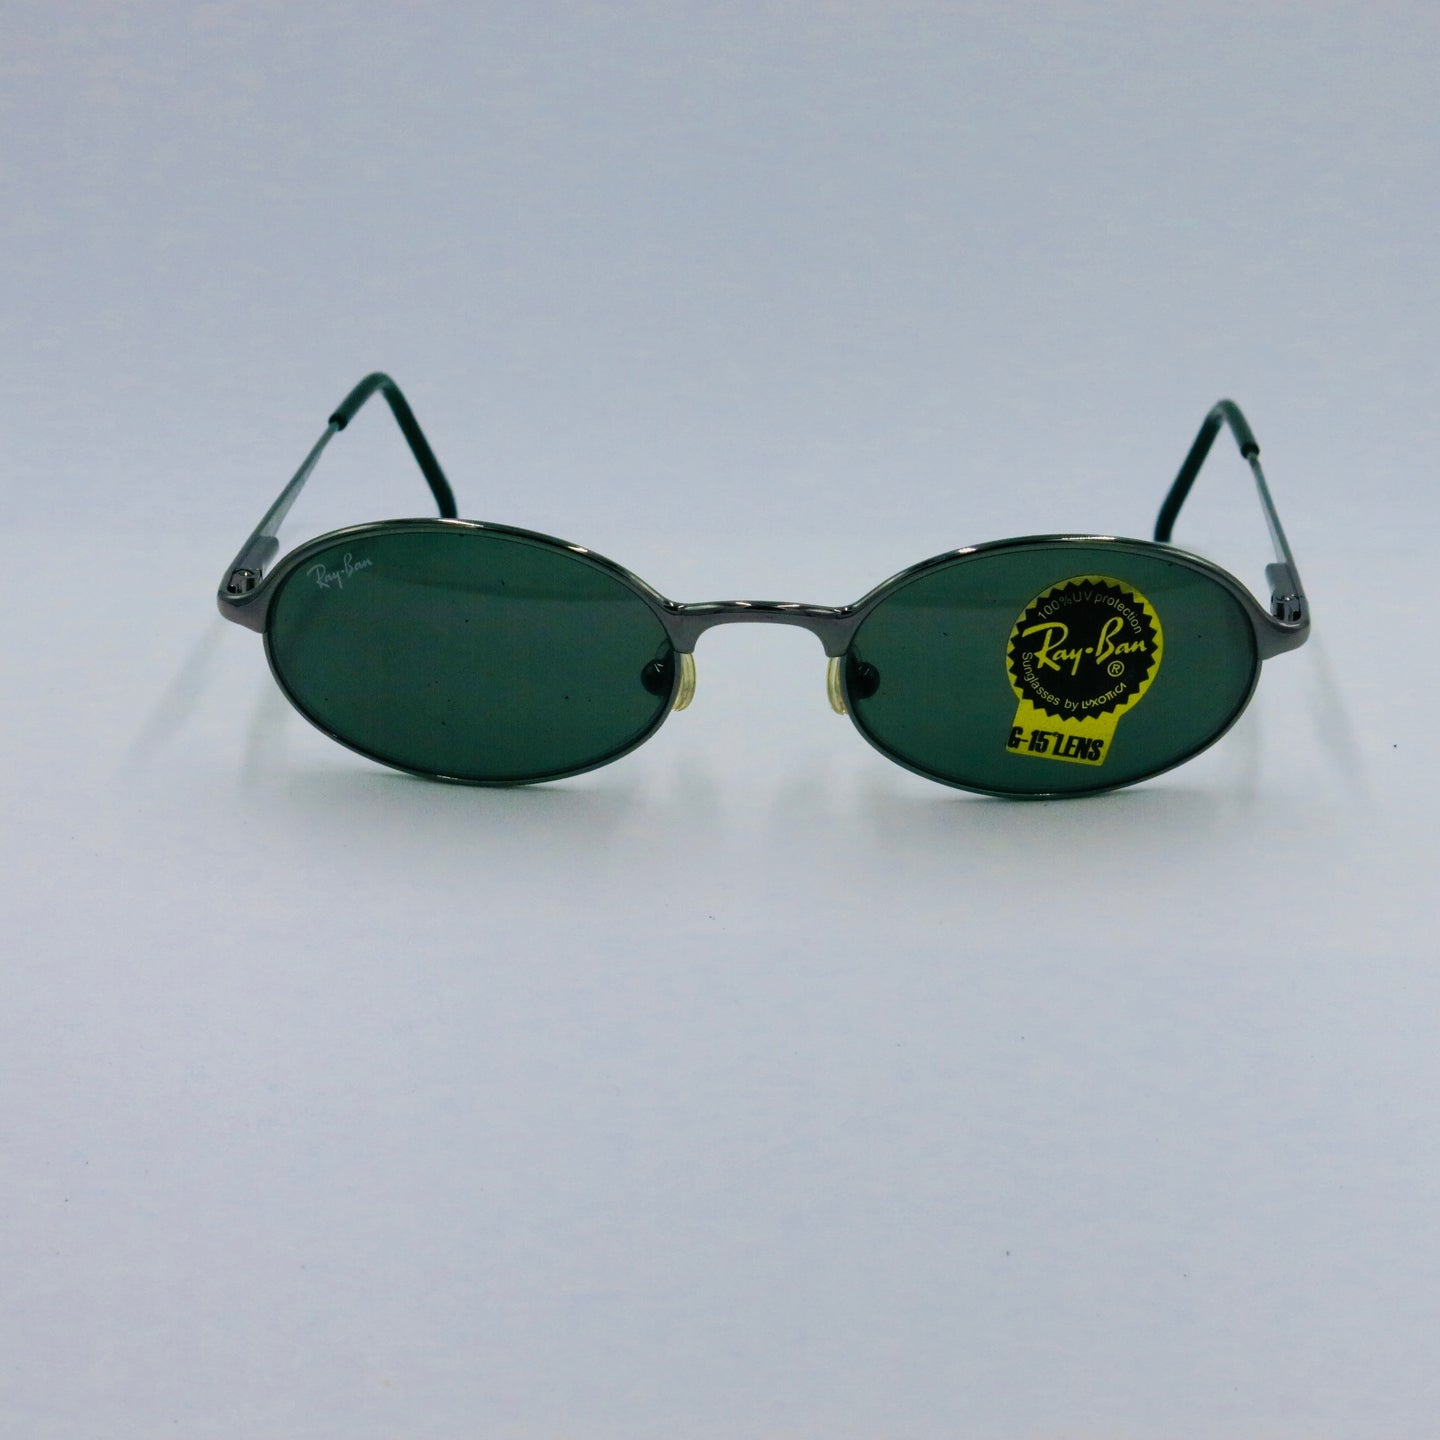 Ray Ban Sunglasses RB 3103 | Sunglasses by Ray Ban | Friedman & Sons